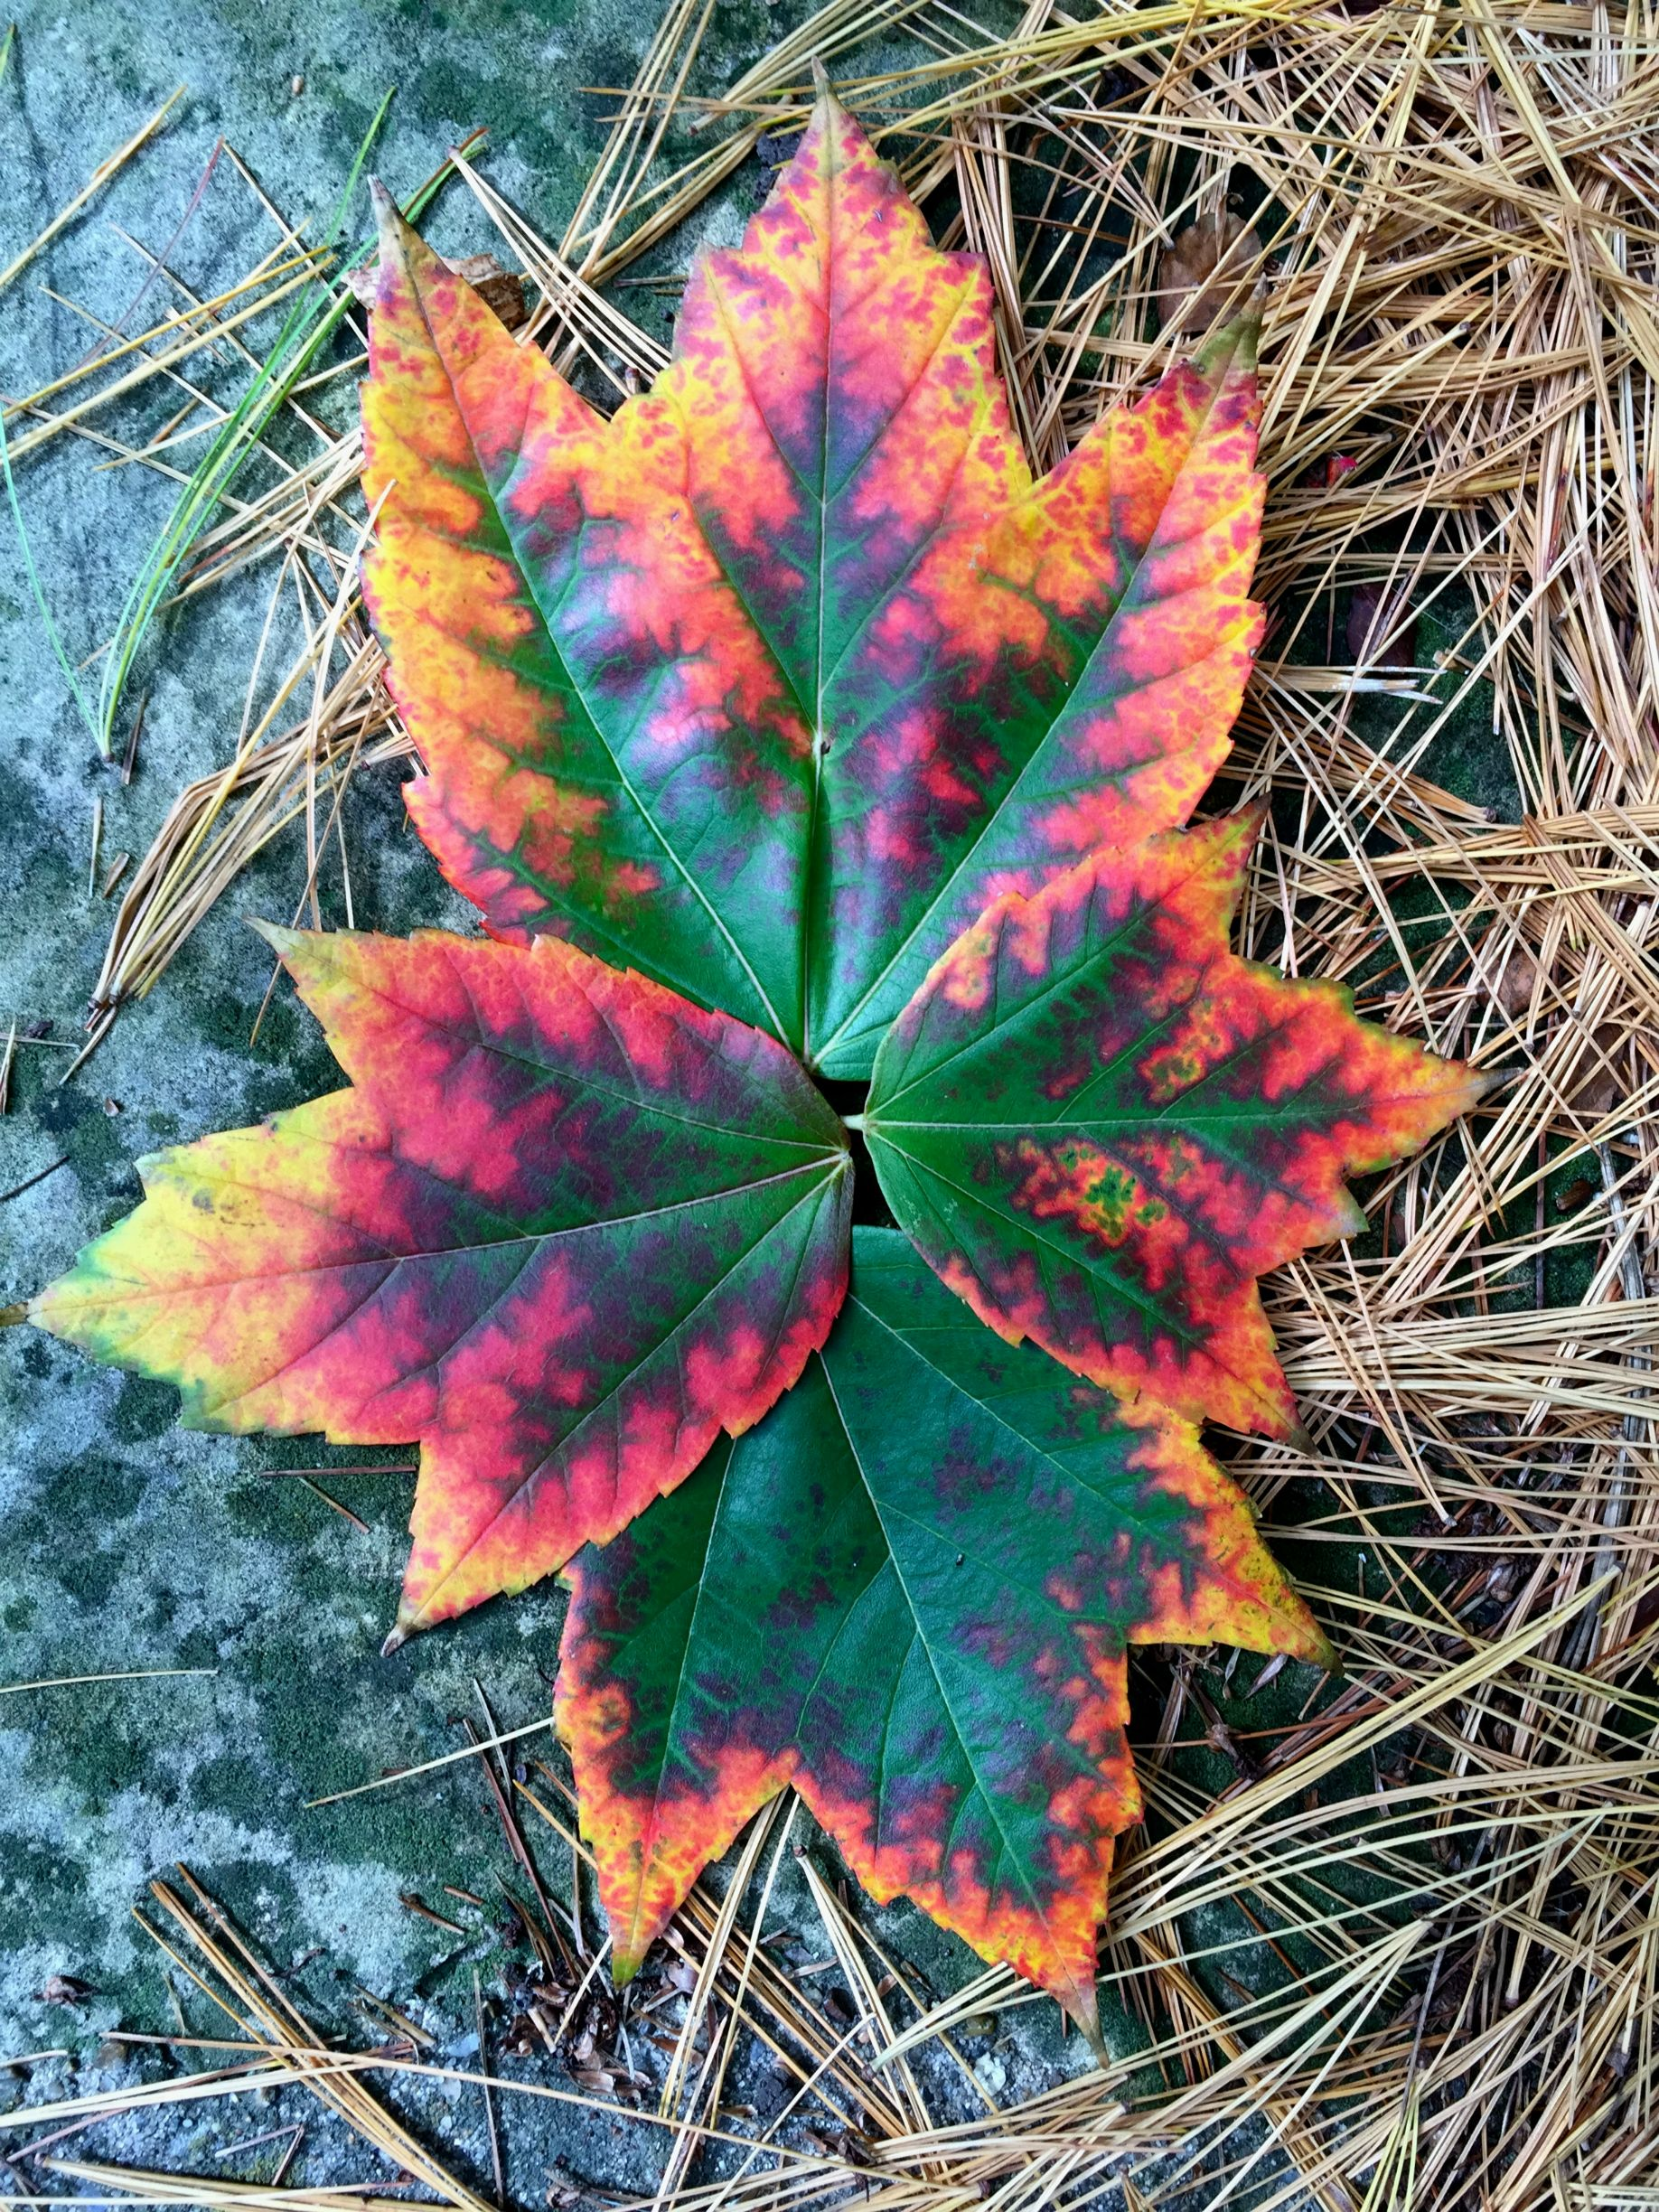 These leaves look like they are on fire